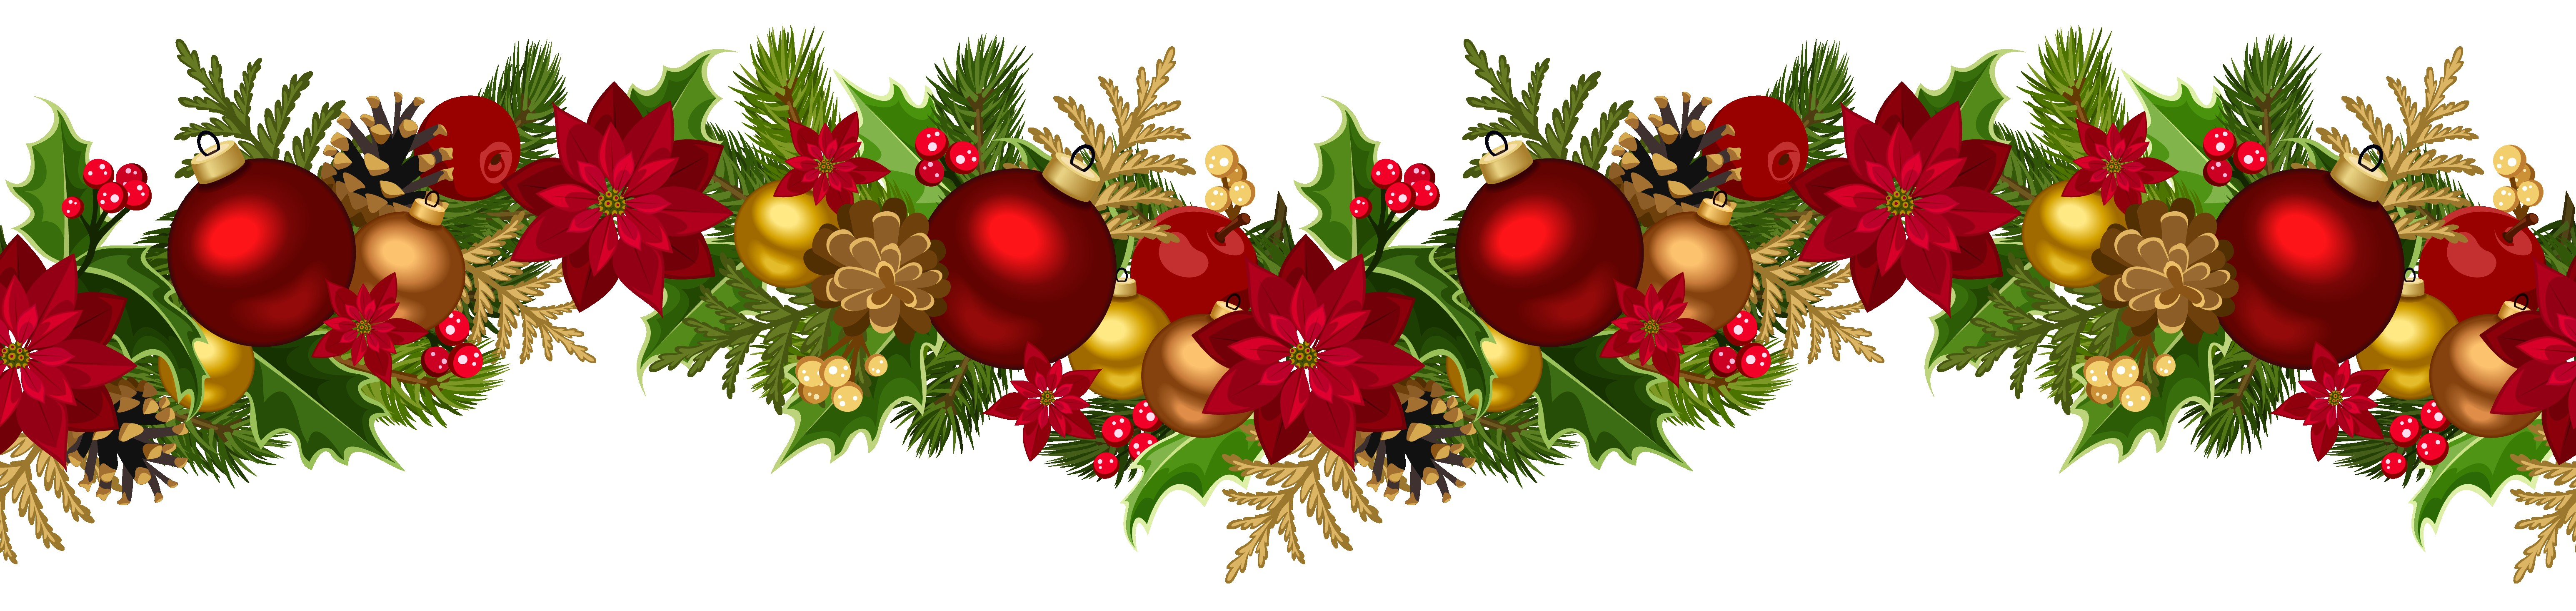 Holiday Garland Clip Art.